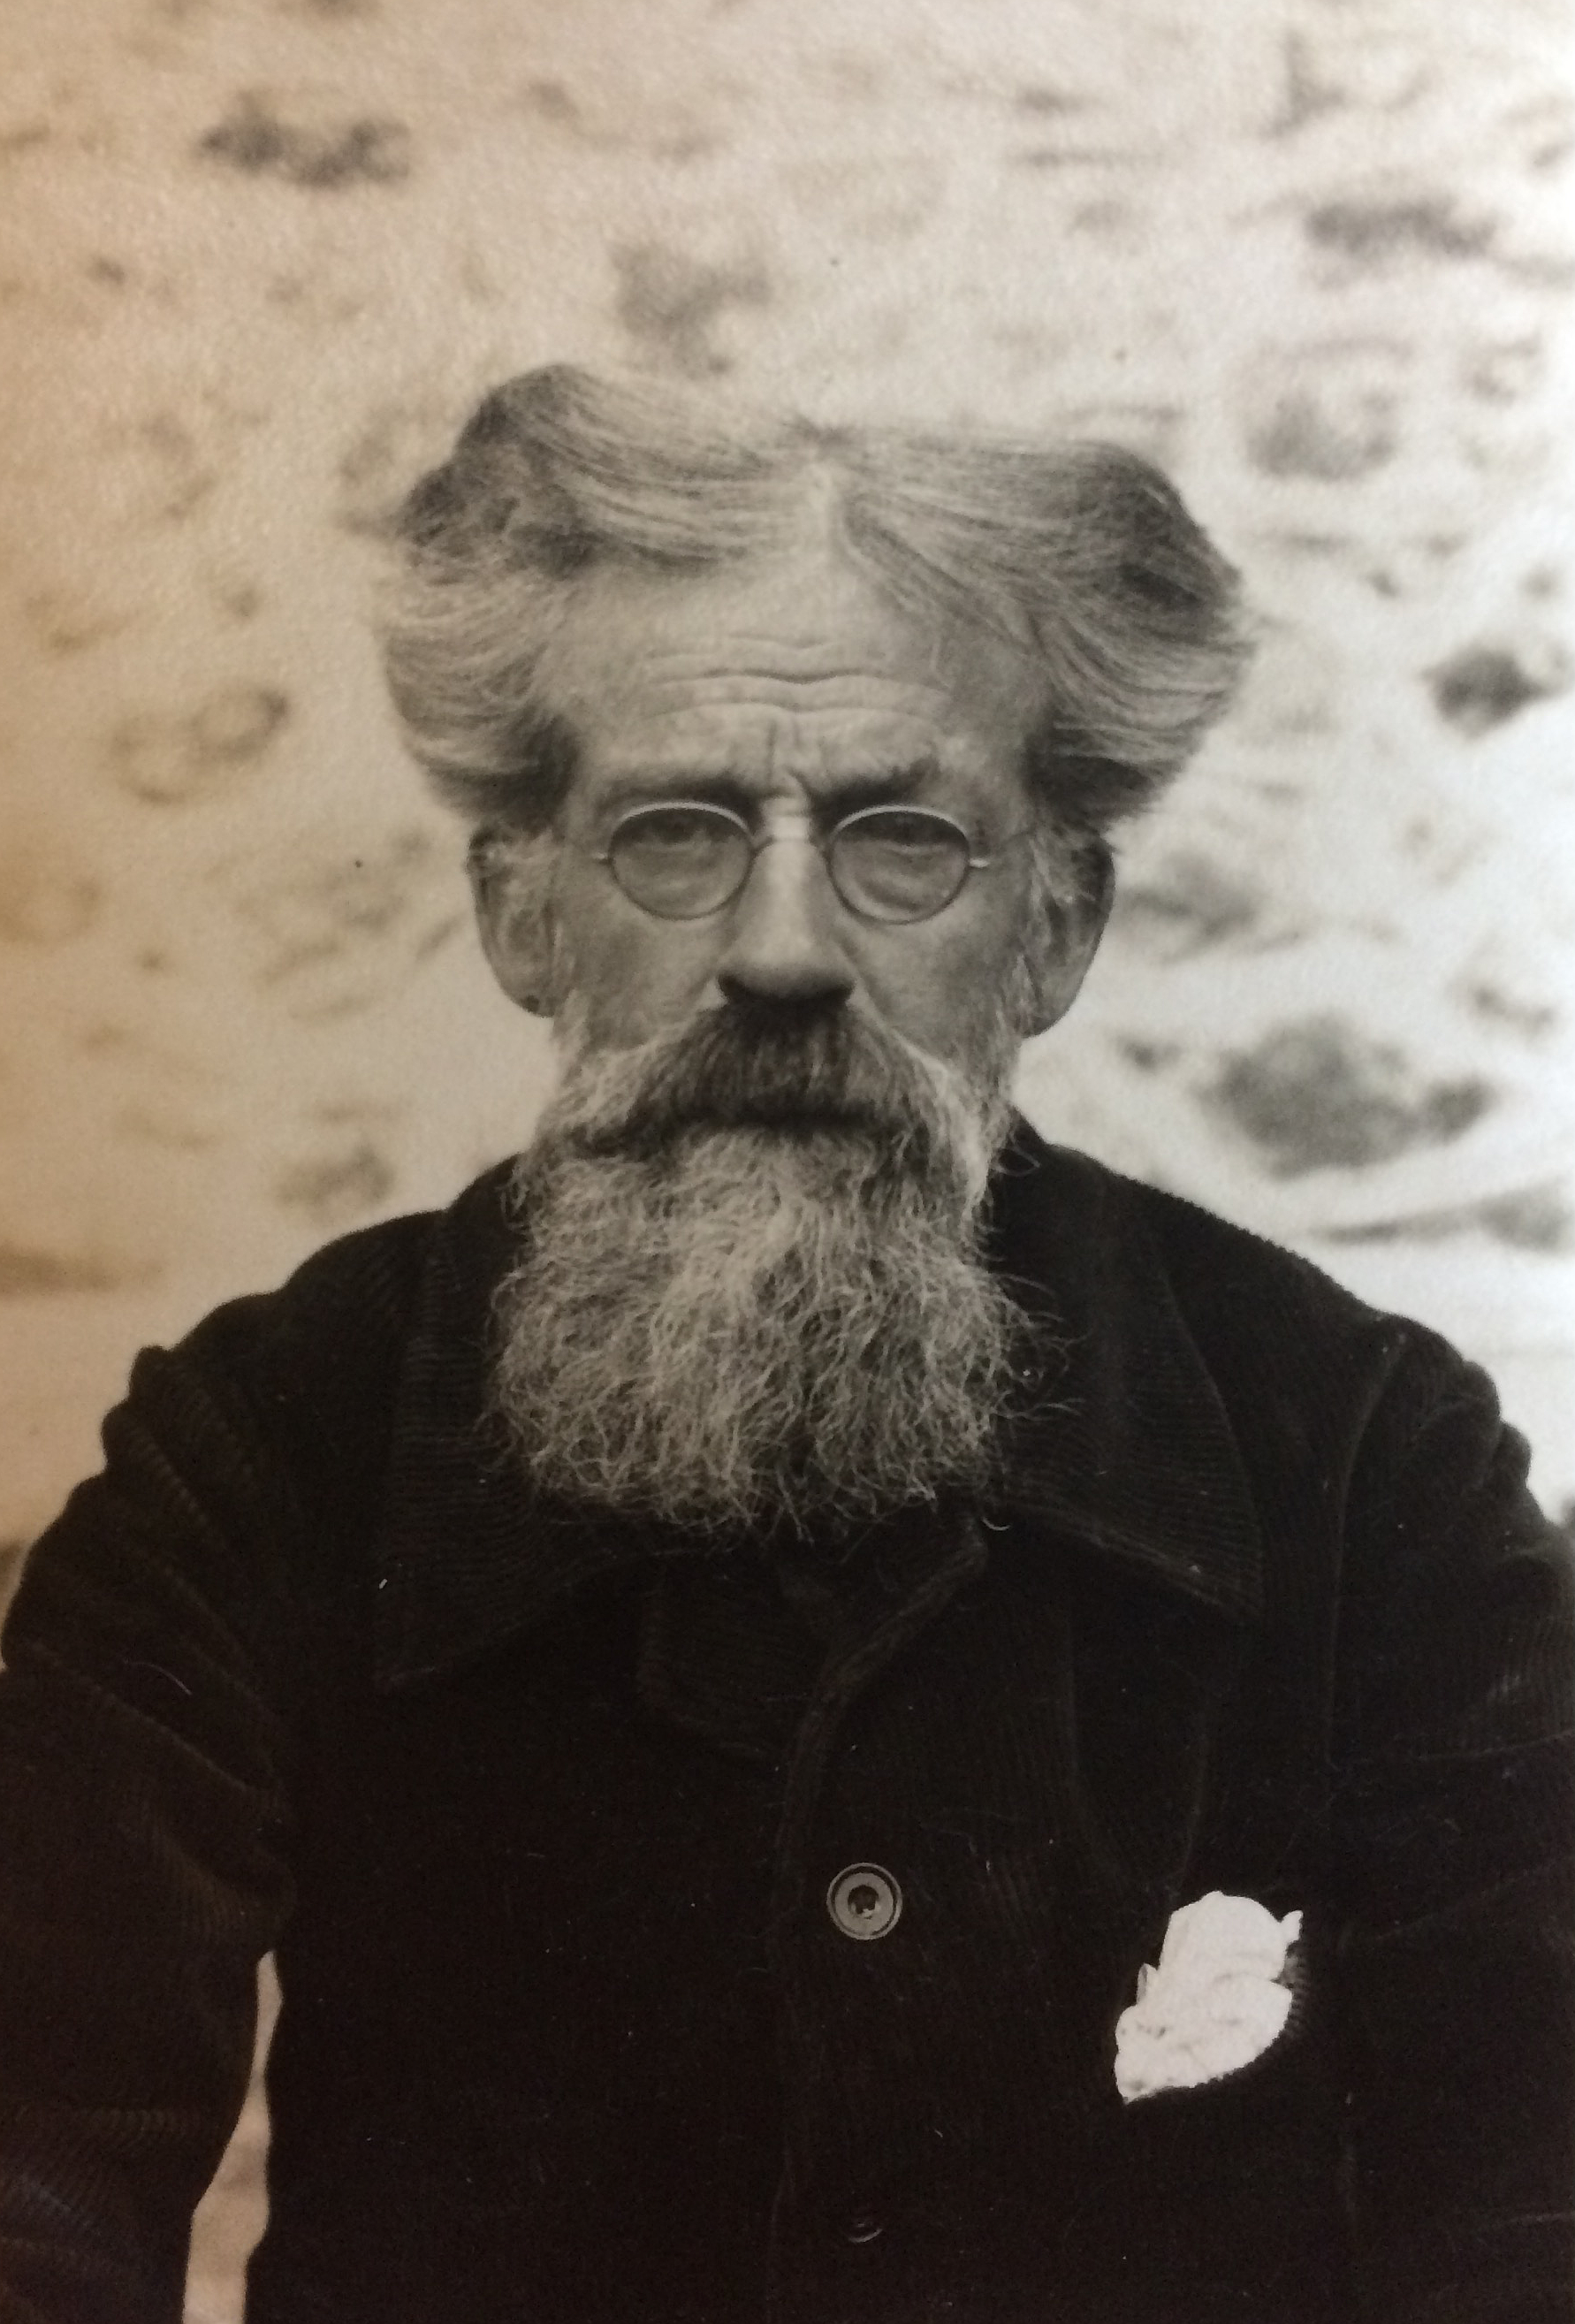 Photograph of Patrick Geddes, aged 73, at Montpellier, c.1927 (Coll-1167/GPF)